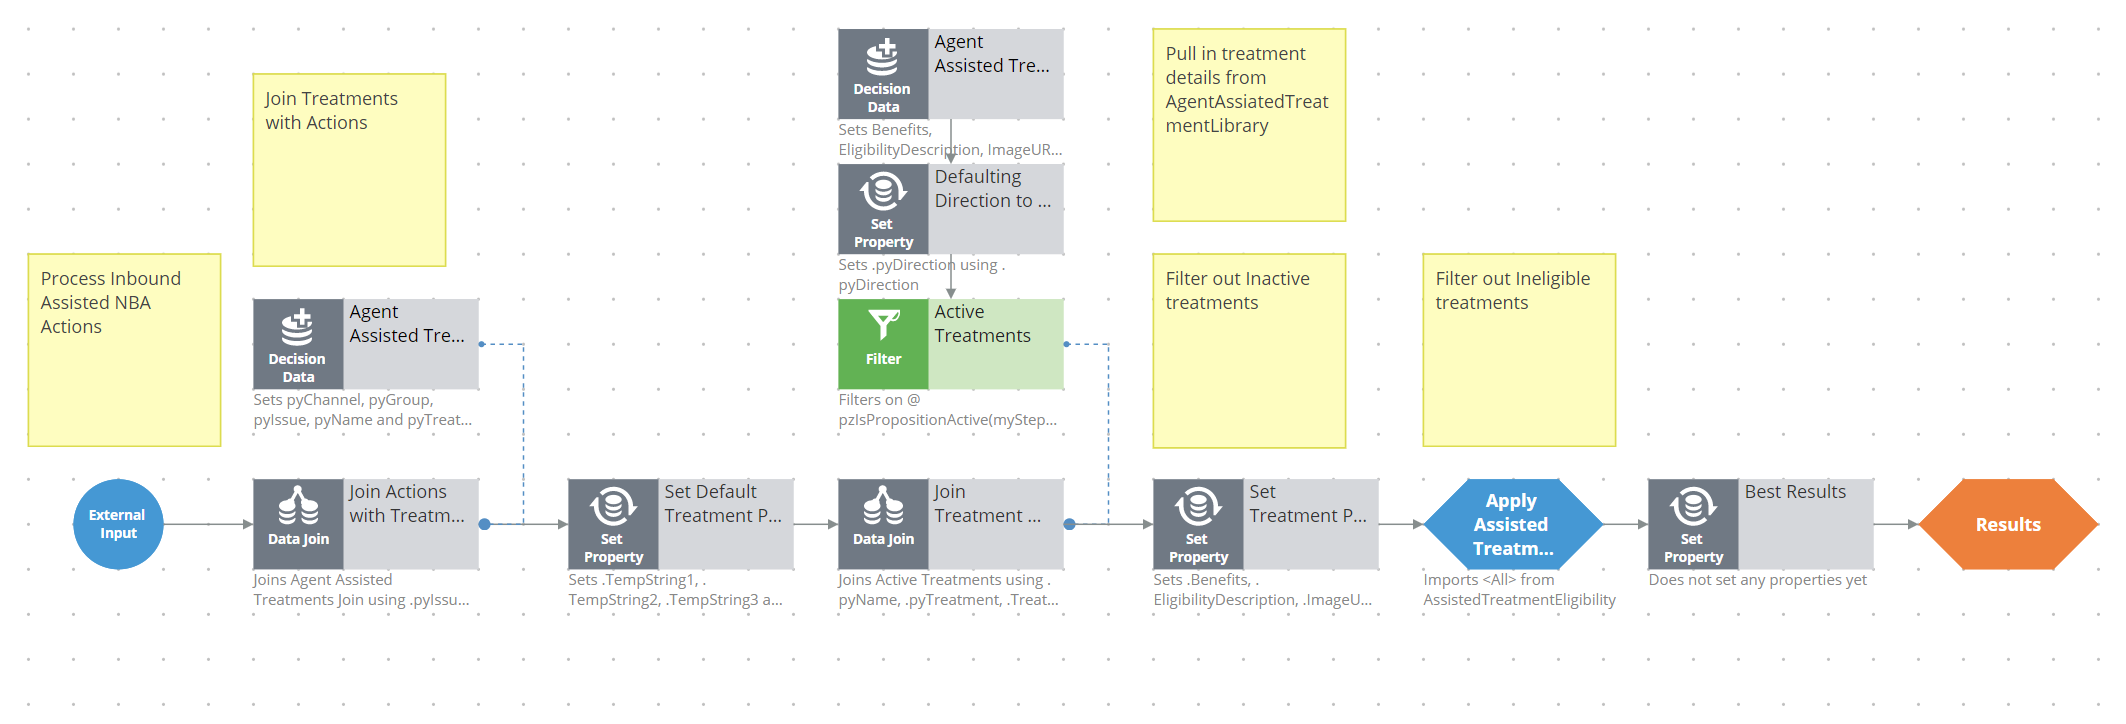 The AssistedTreatment strategy